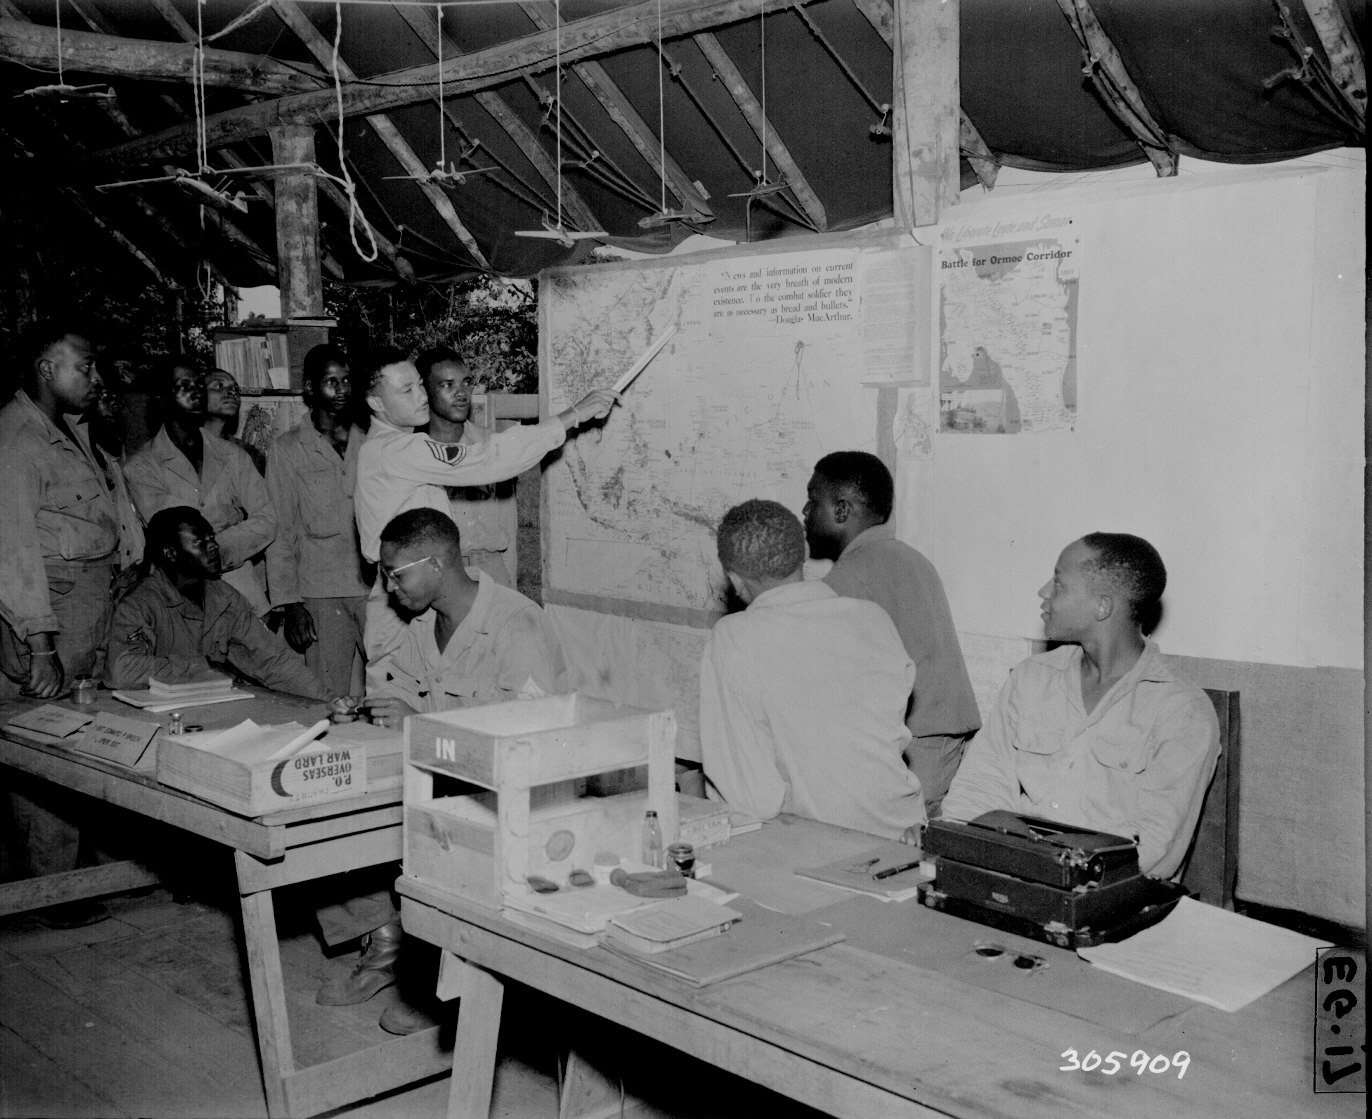 http://www.archives.gov/research/african-americans/ww2-pictures/images/african-americans-wwii-008.jpg